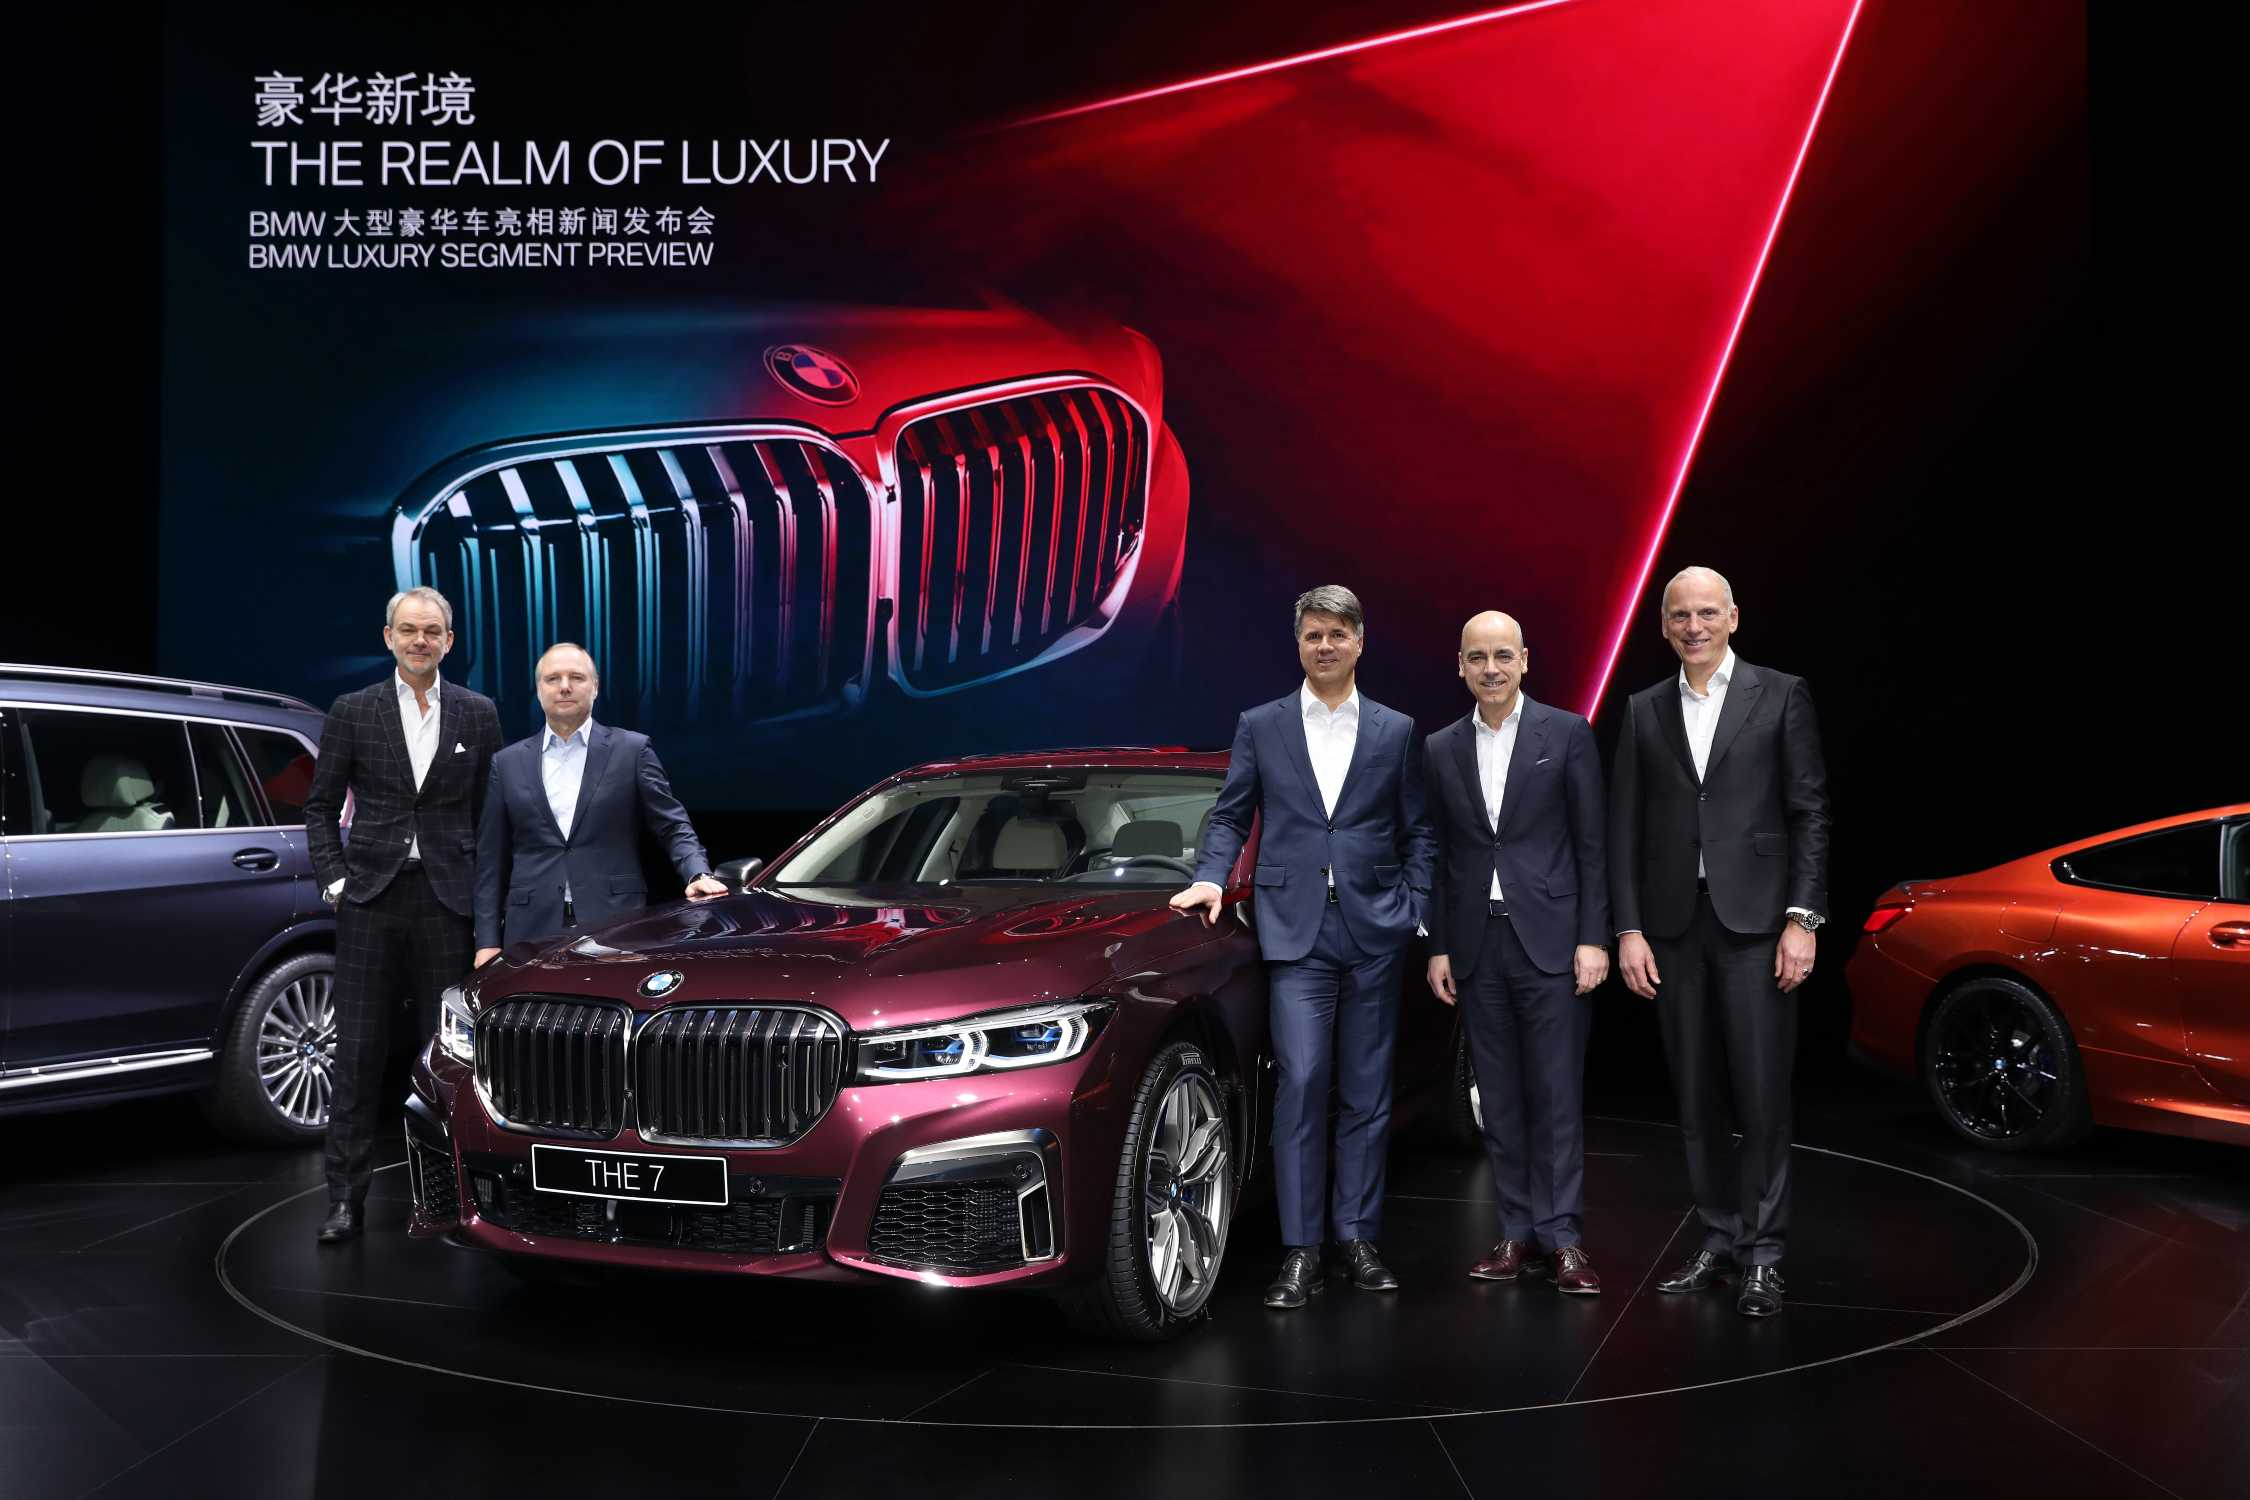 New Bmw 7 Series World Premiere In China